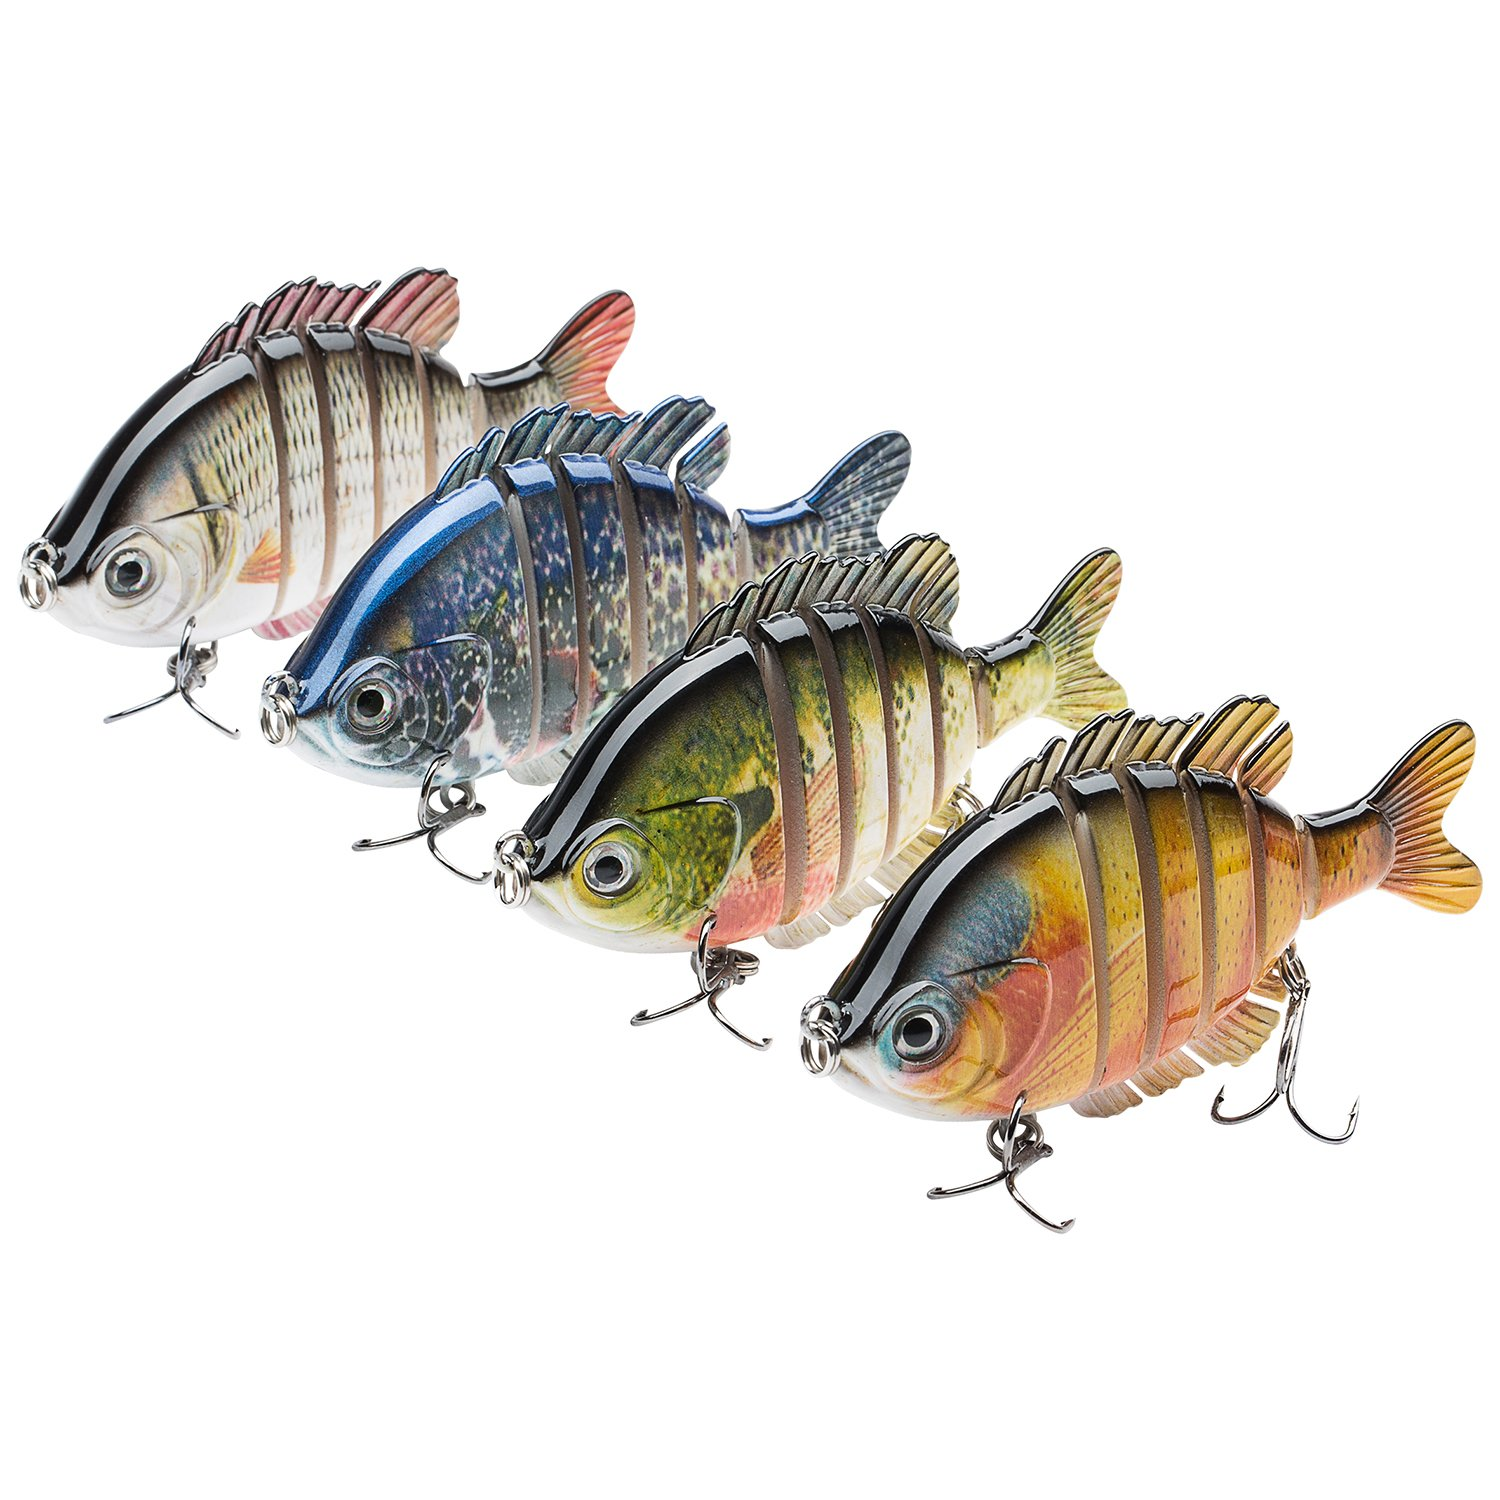 Bassdash SwimPanfish Multi Jointed Panfish Bluegill Swimbaits Topwater Hard Bass Fishing Crank Lure 3.5in/0.85oz, 4 Colors (Pack of 4 Colors) by Bassdash